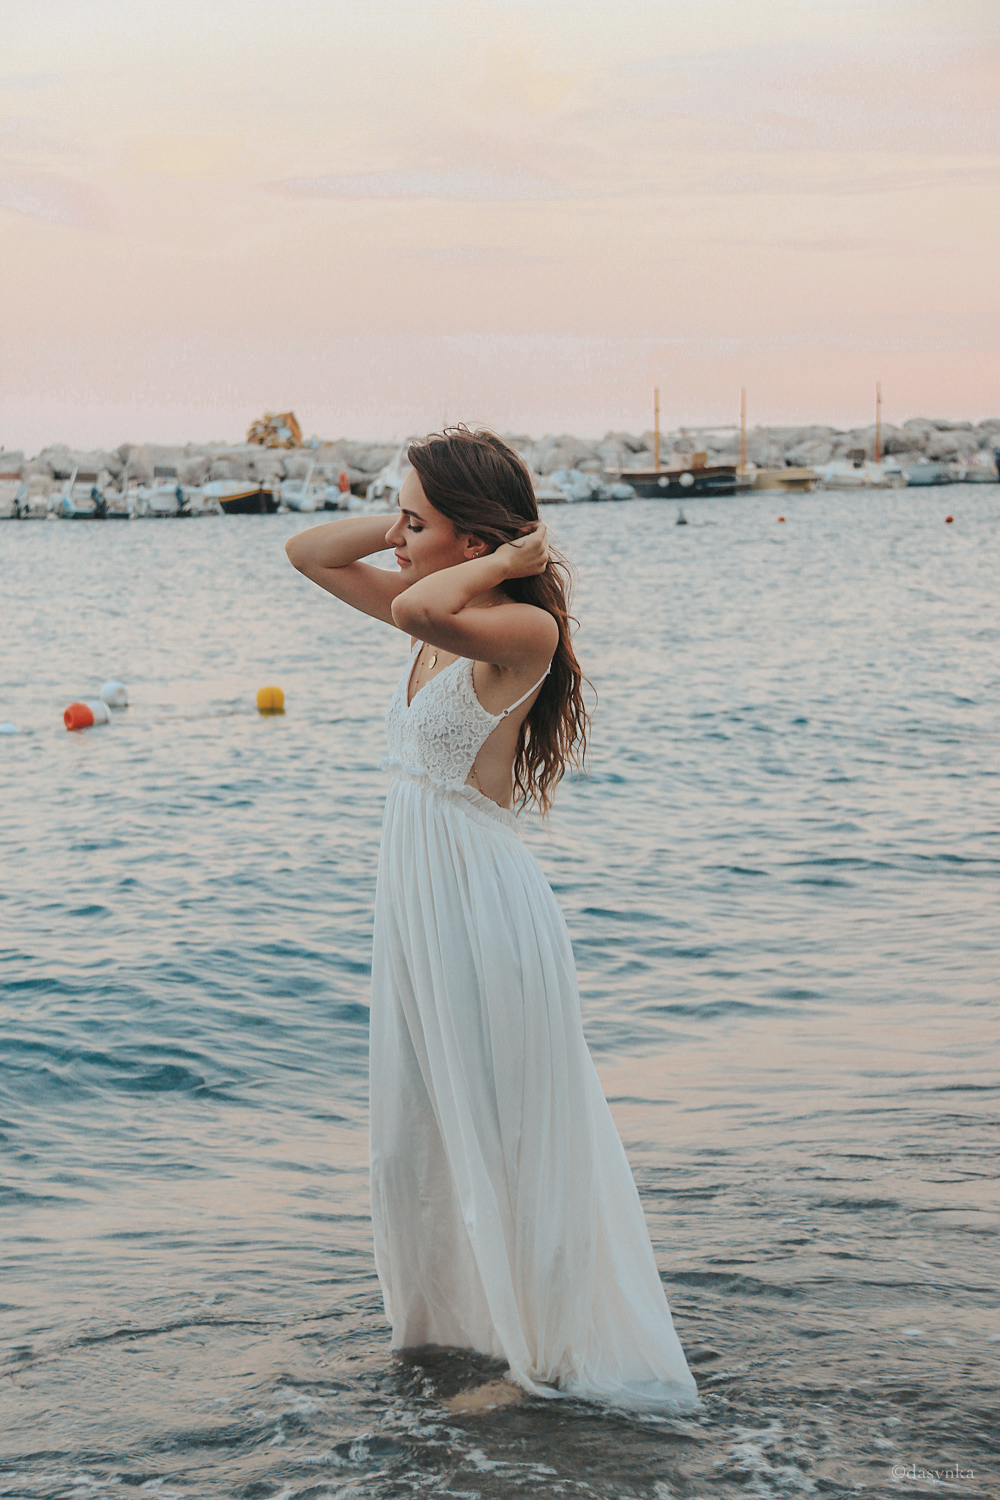 dasynka-fashion-blog-blogger-influencer-inspiration-shooting-model-globettrotter-travel-girl-lookbook-instagram-long-hair-street-style-casual-italy-lifestyle-outfit-poses-atrani-amalfi-coast-sea-summer-dress-maxi-white-mermaid-body-jewelry-chloe-bag-beach-sunset-positano-look-luxury-gold-inspo-ocean-shoot-instagrammer-anchor-pink-sky